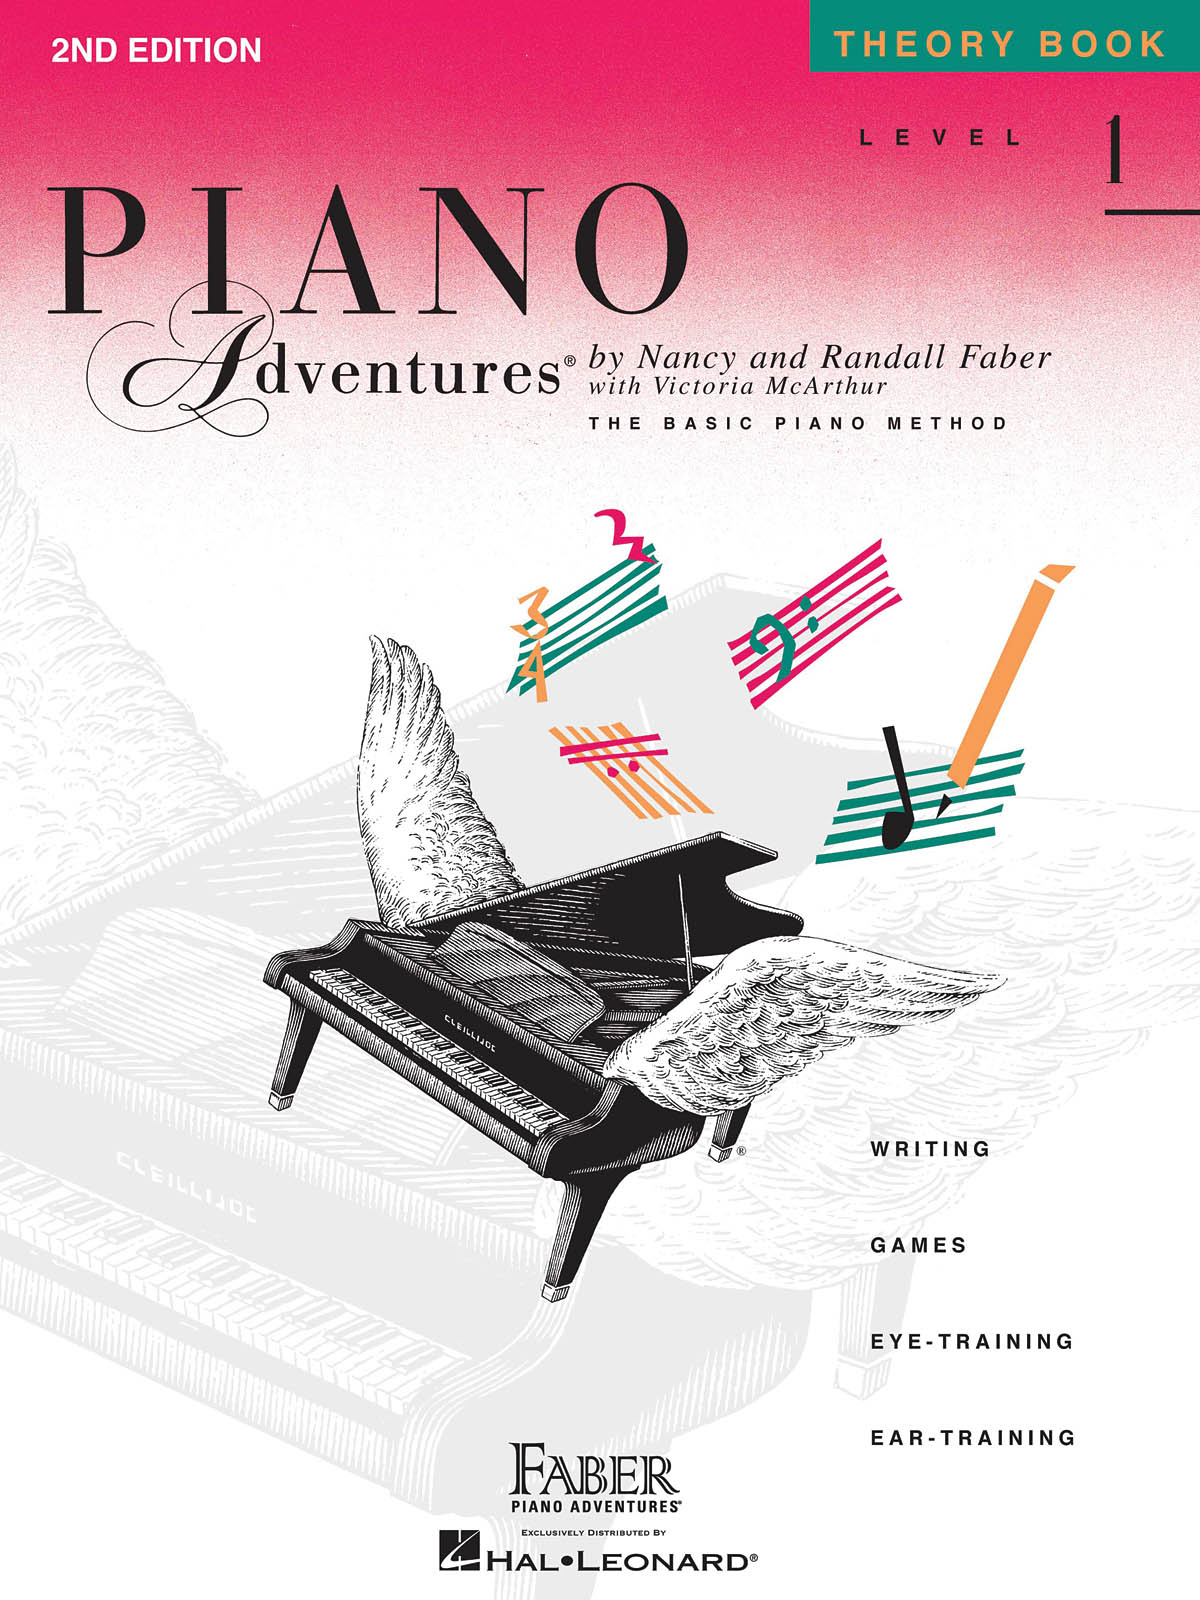 FABER NANCY & RANDALL - PIANO ADVENTURES - THEORY BOOK - LEVEL 1